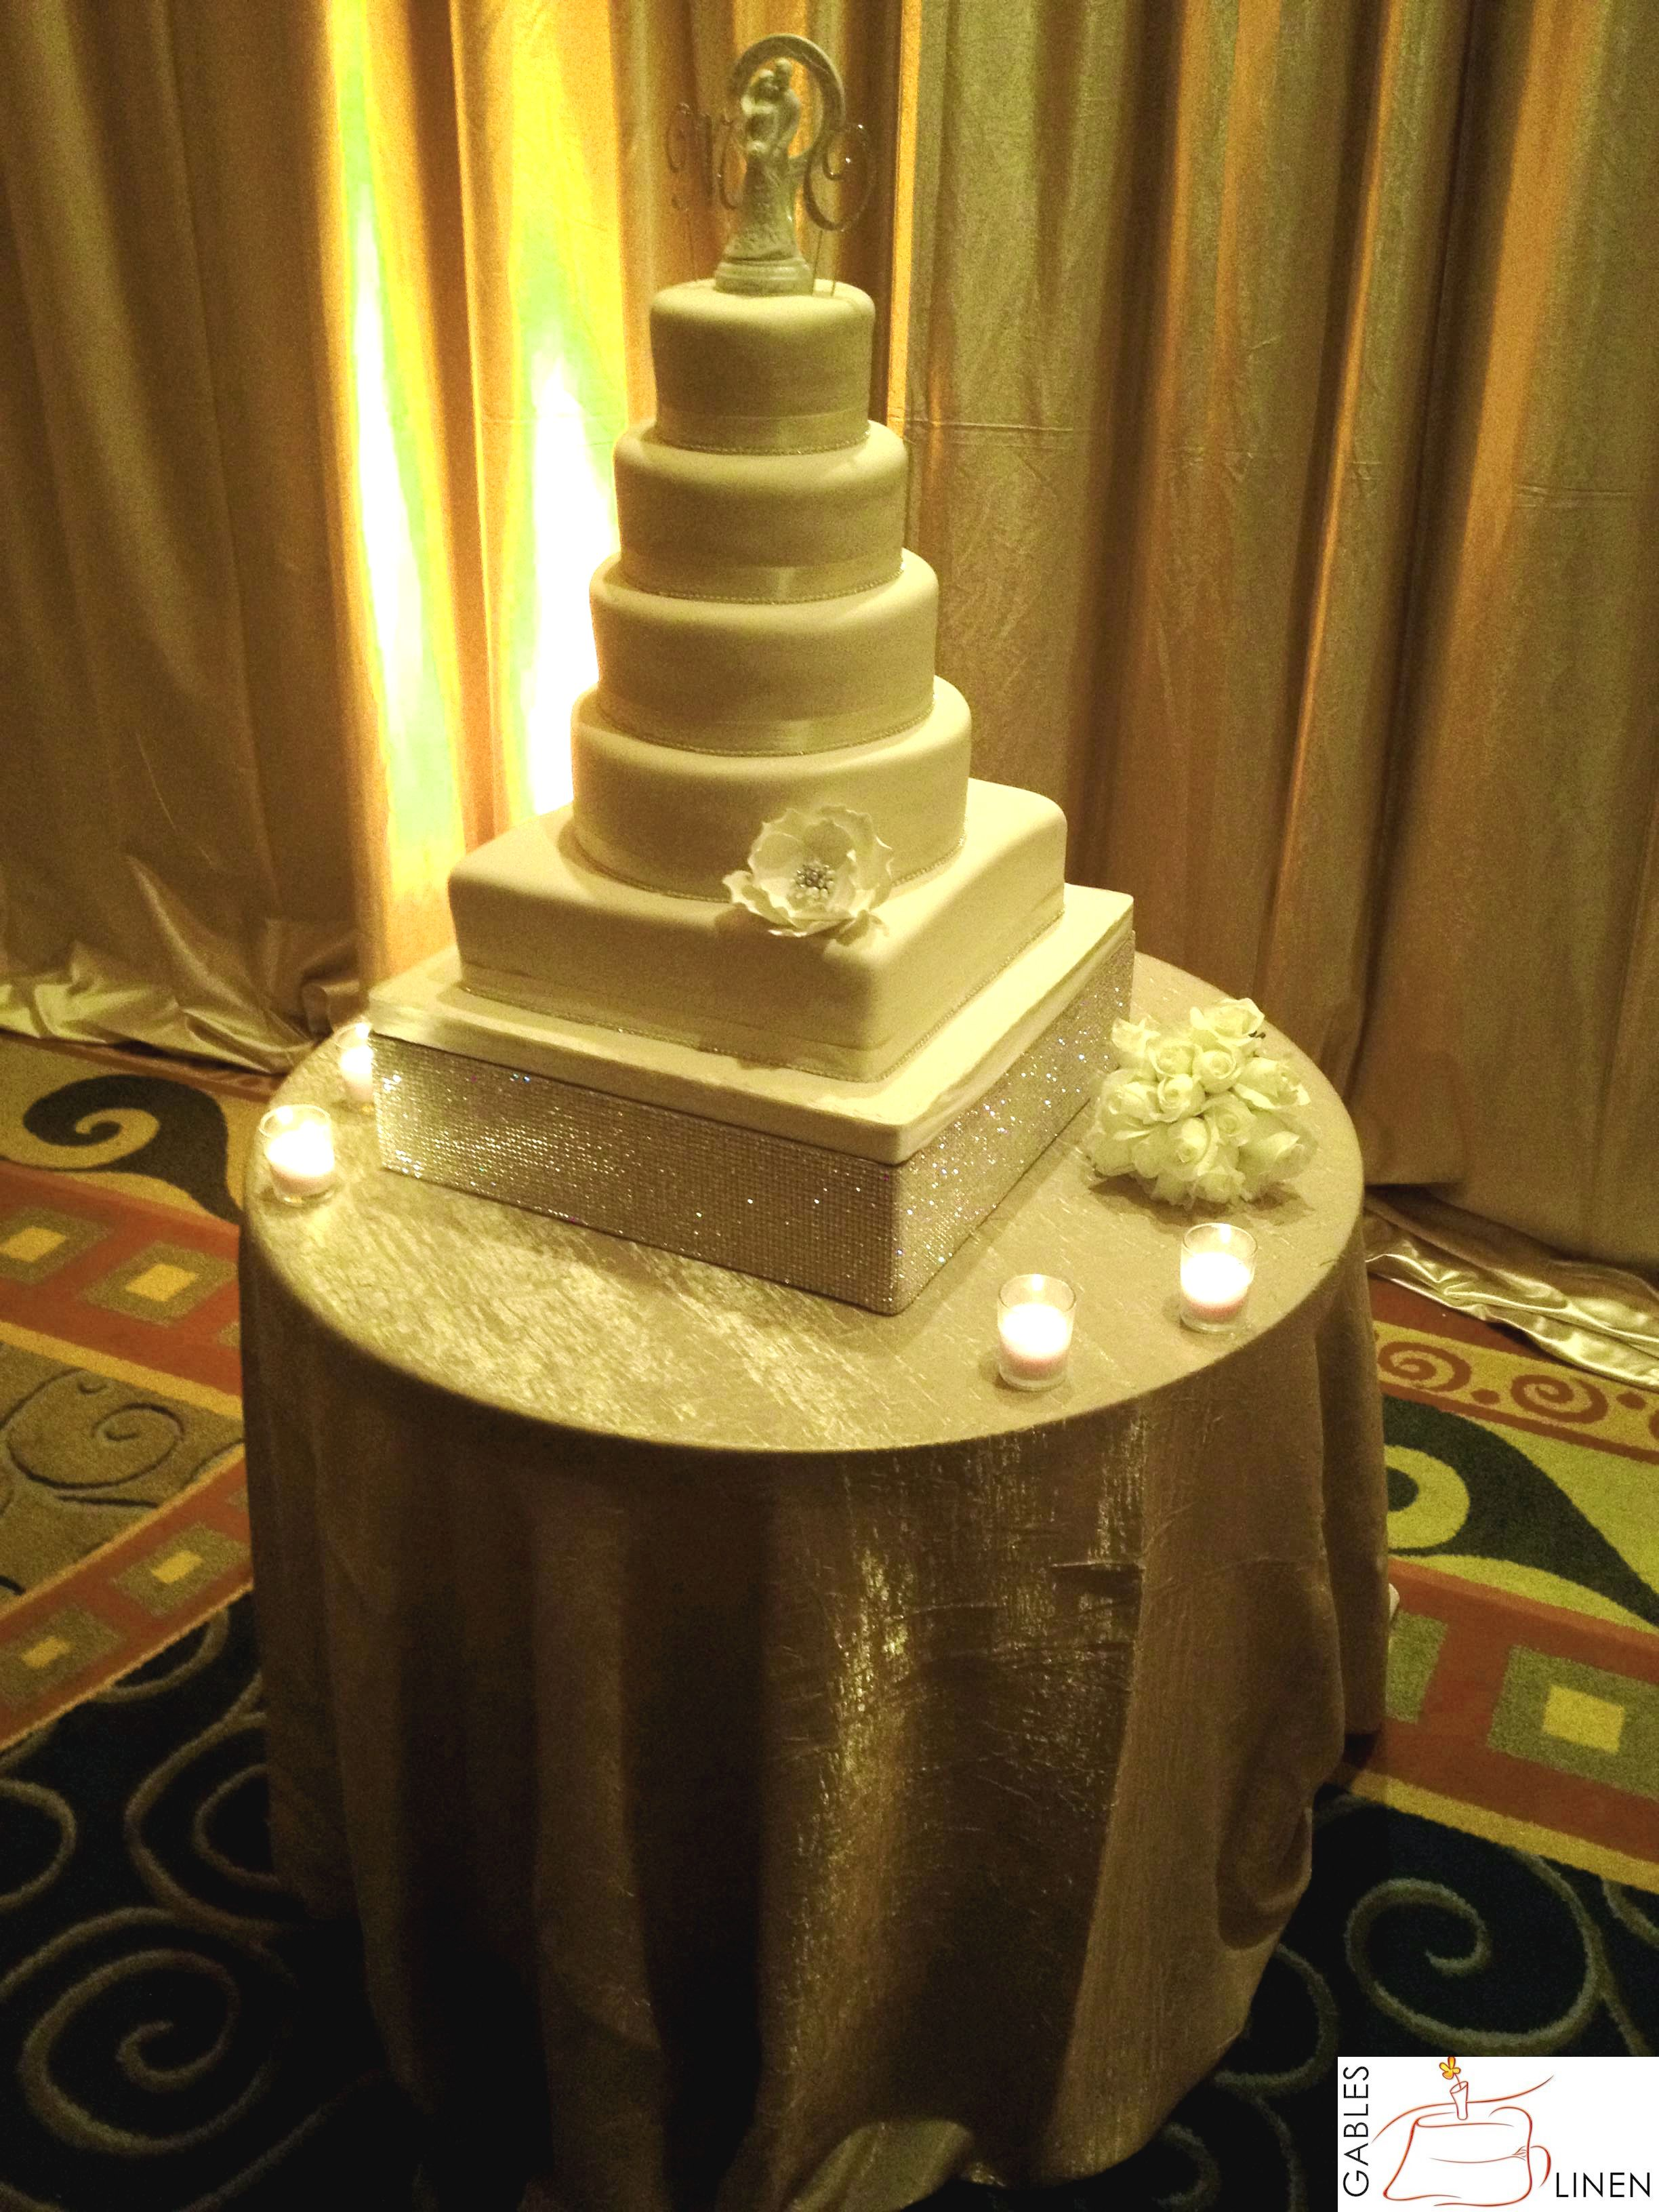 Gold galaxy linen for cake table. cake by #Anapaz | Wedding cake ...